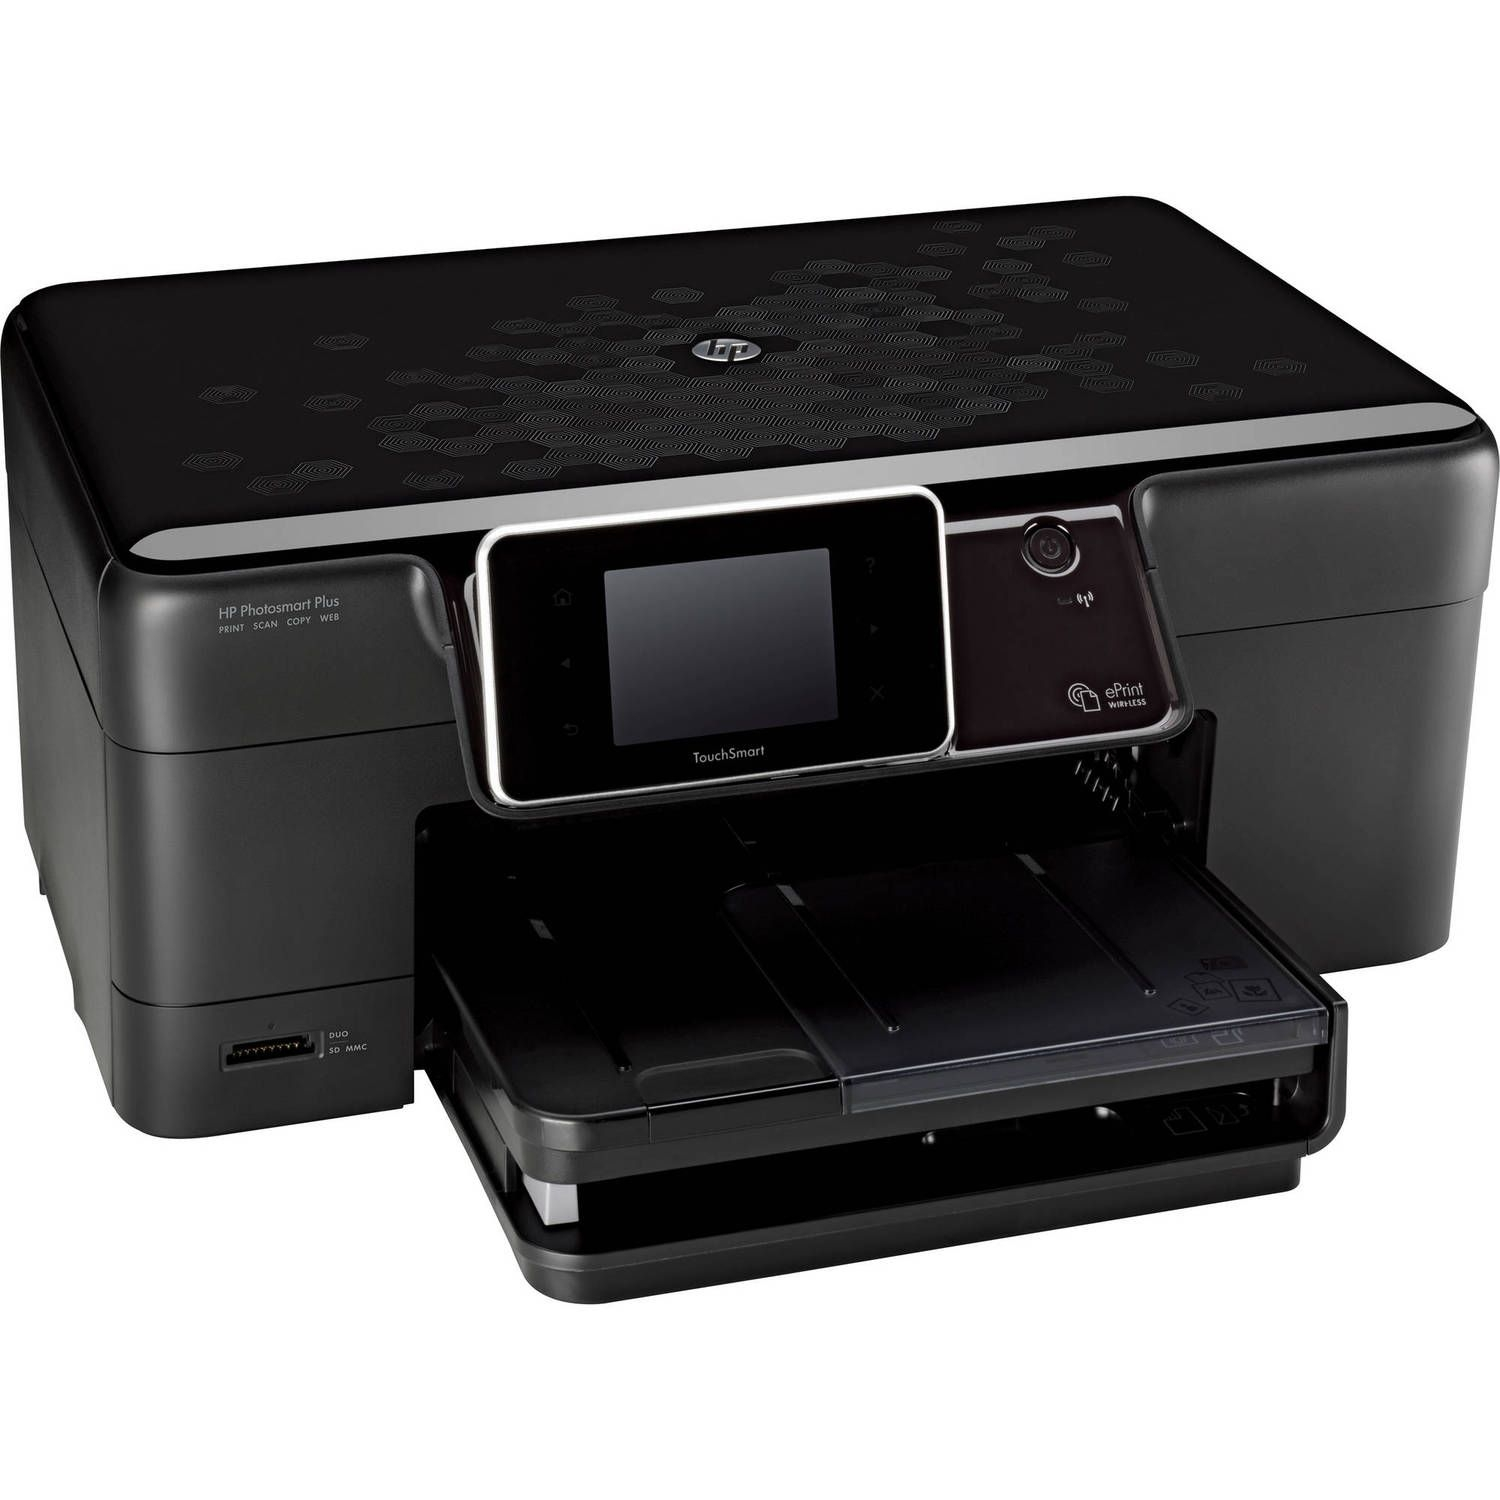 Hp Photosmart Plus E-All-In-One Wireless Inkjet Printer